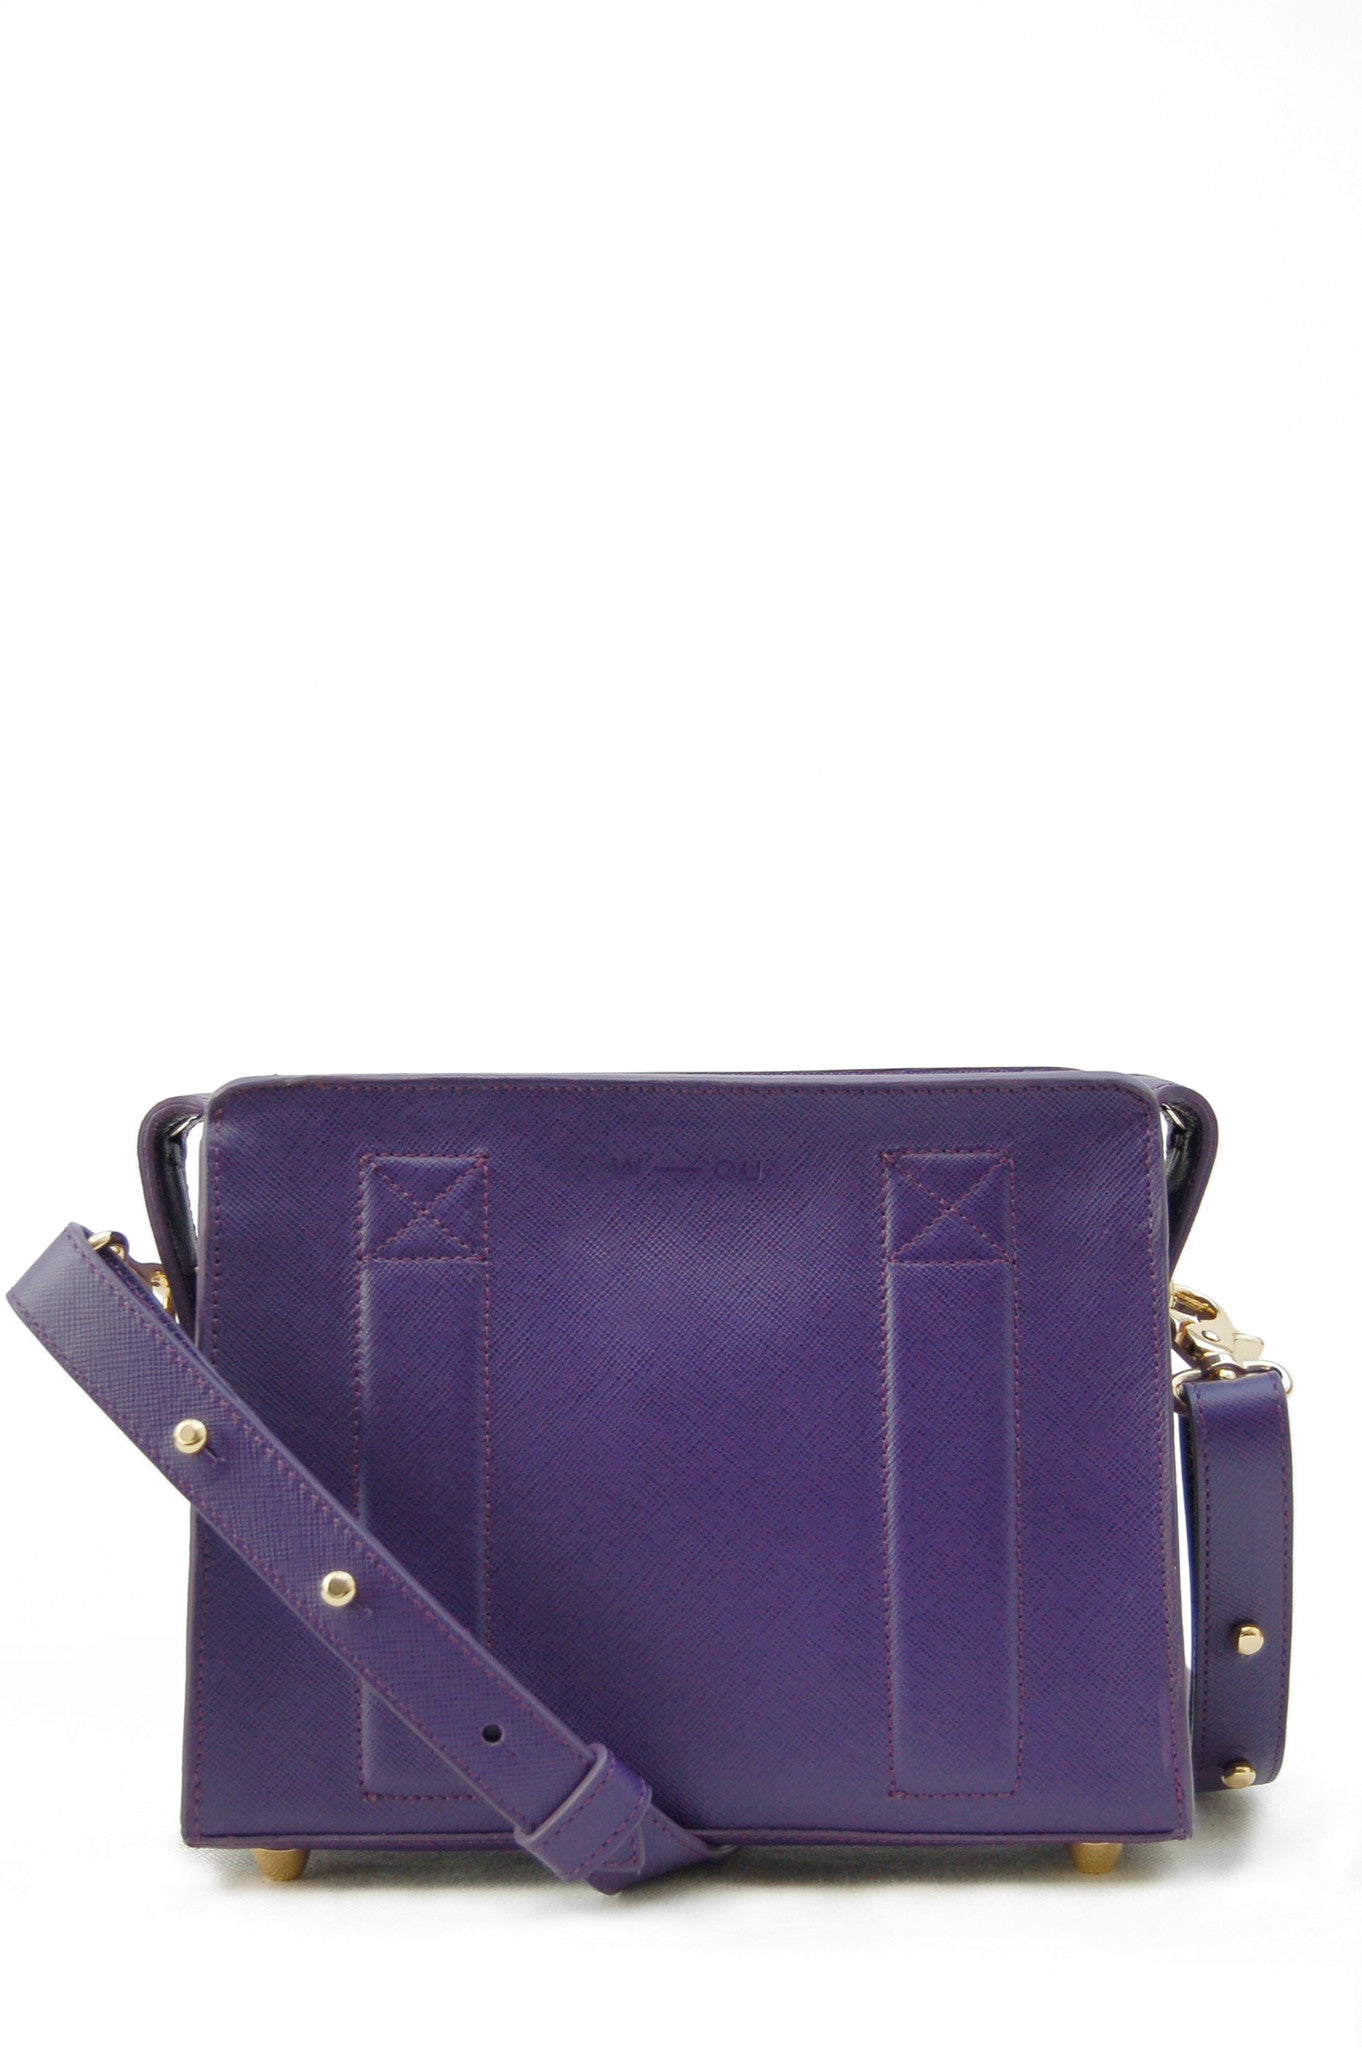 Sara box bag purple